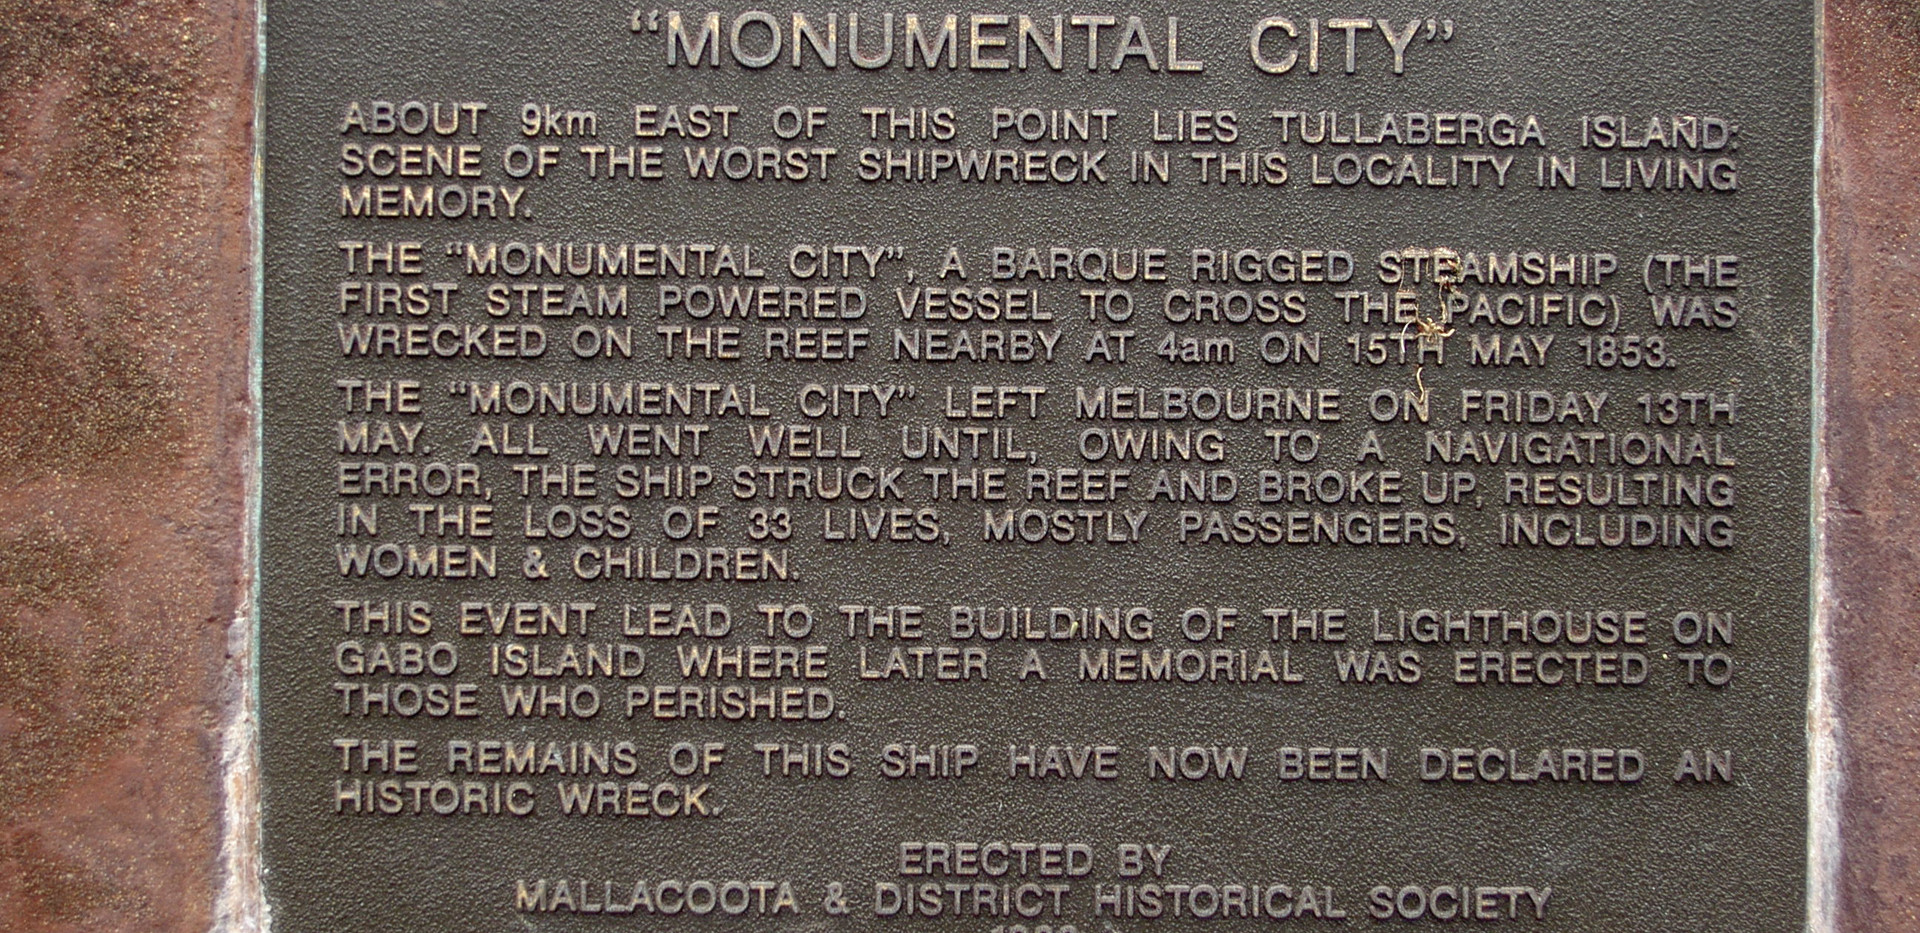 Monumental City plaque